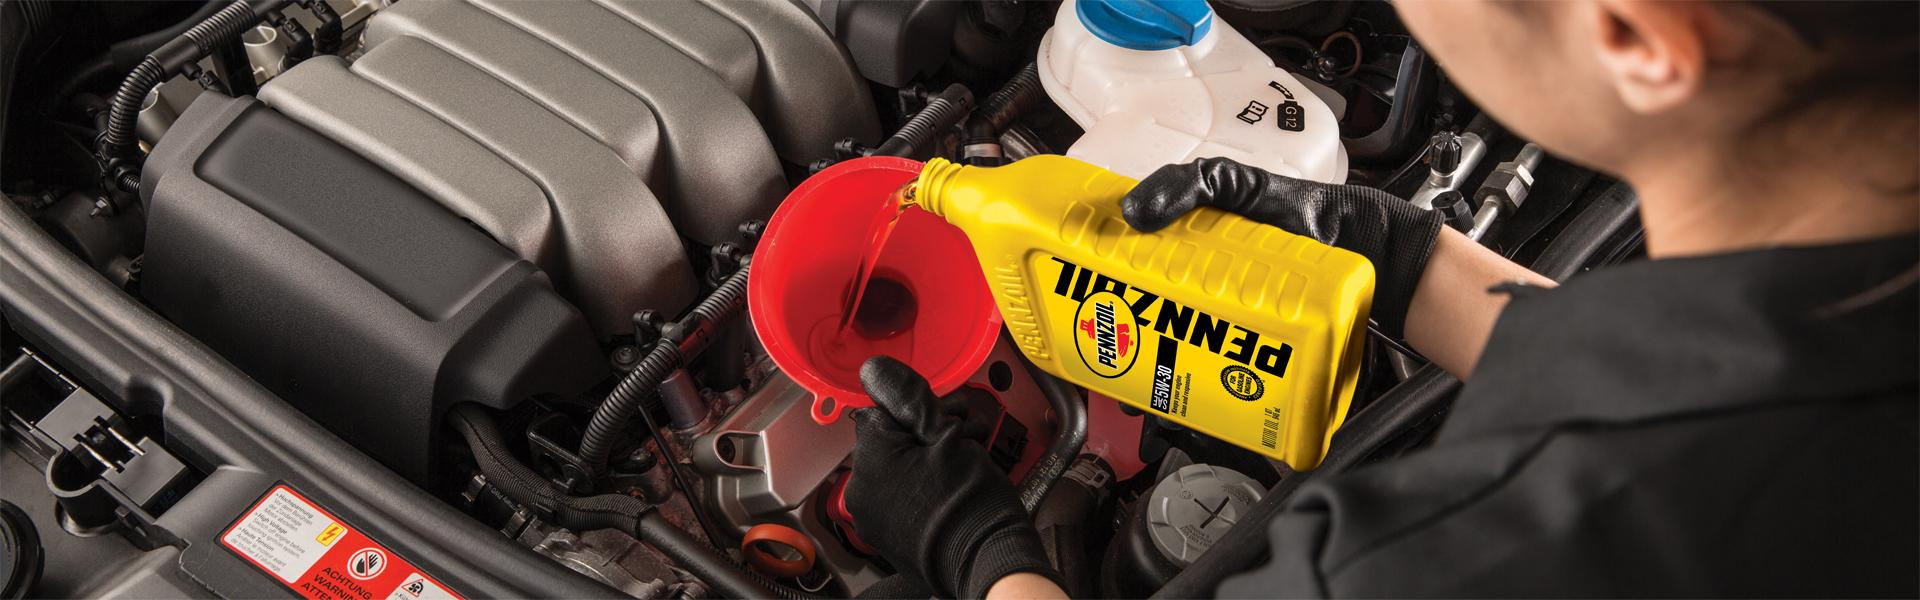 Oil Change Near Me Jiffy Lube 2012 Sprinter Fuel Filter Location